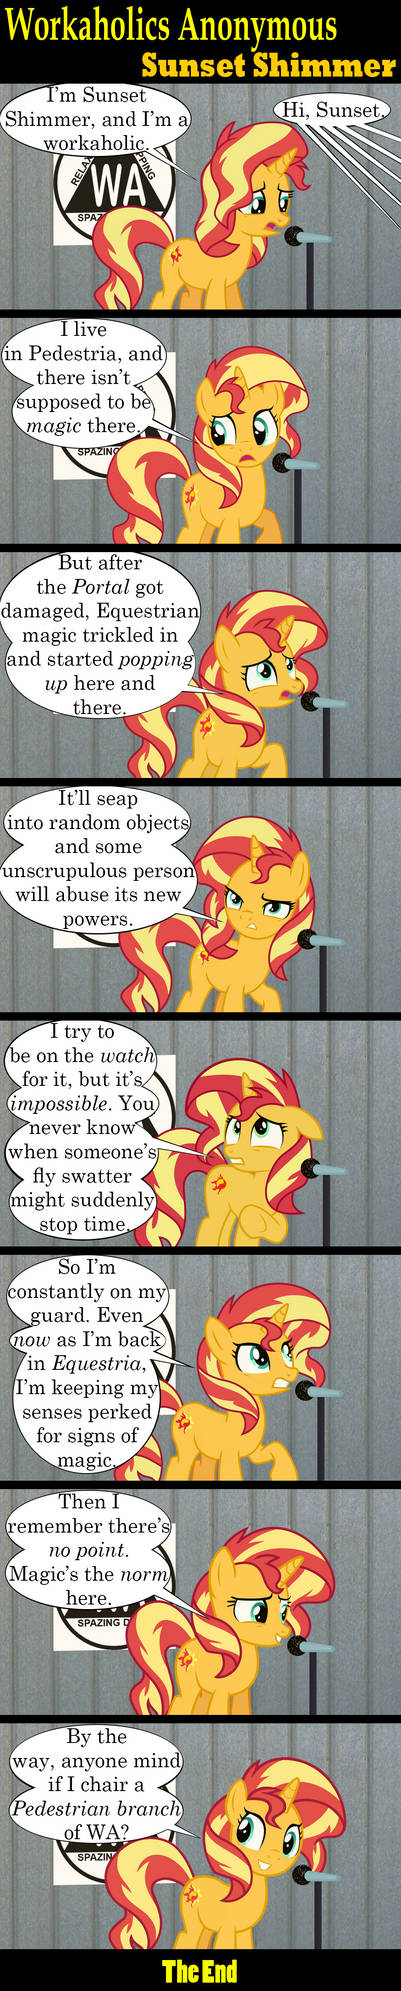 Workaholics Anonymous: Sunset Shimmer